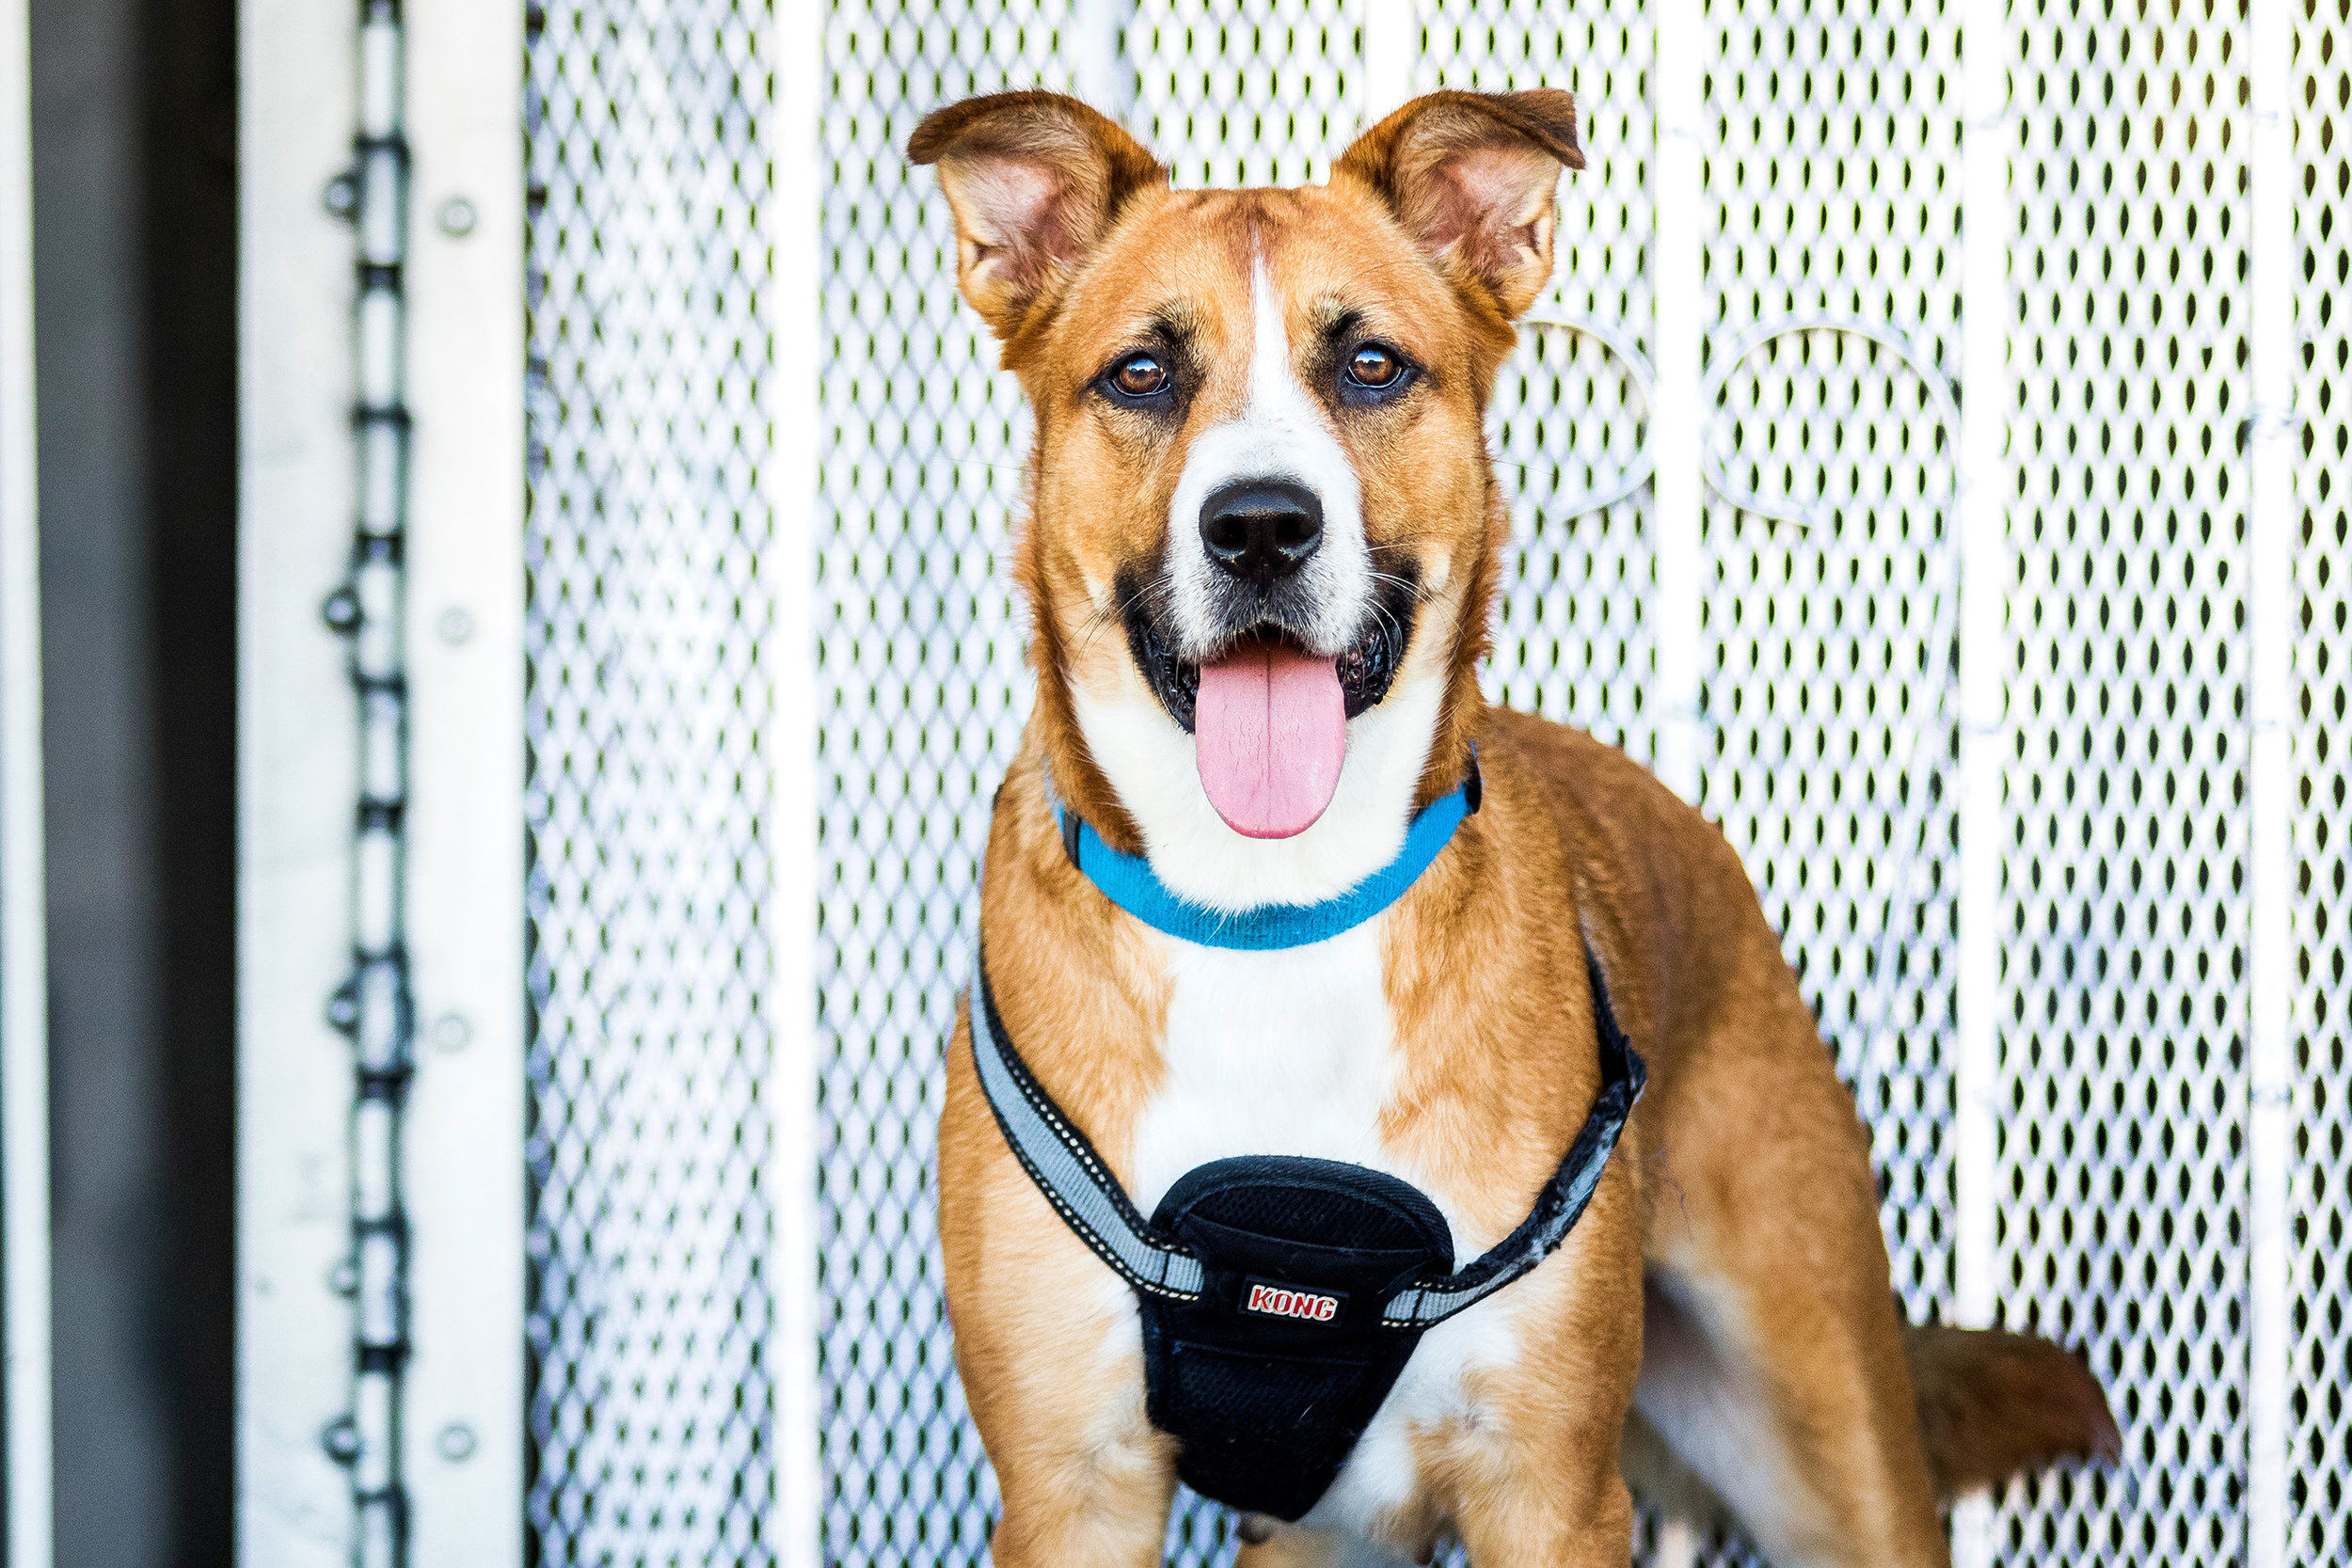 Adoptable dogs in Fort Lauderdale